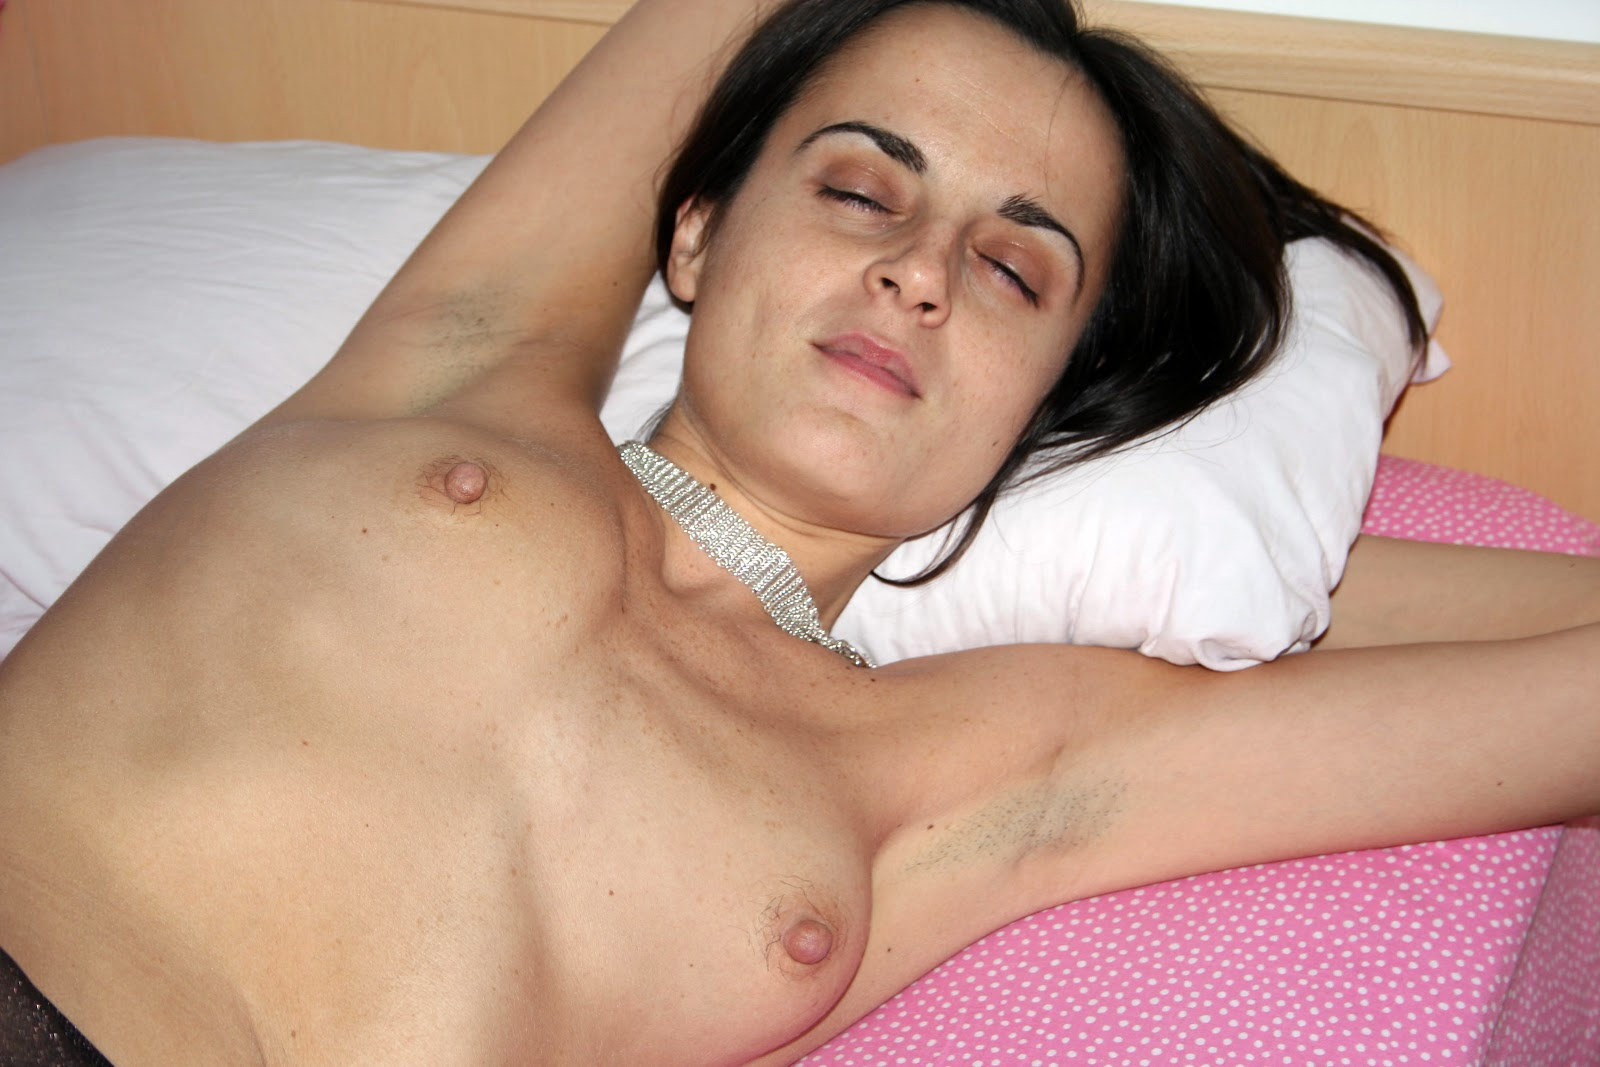 boy touch nude mom